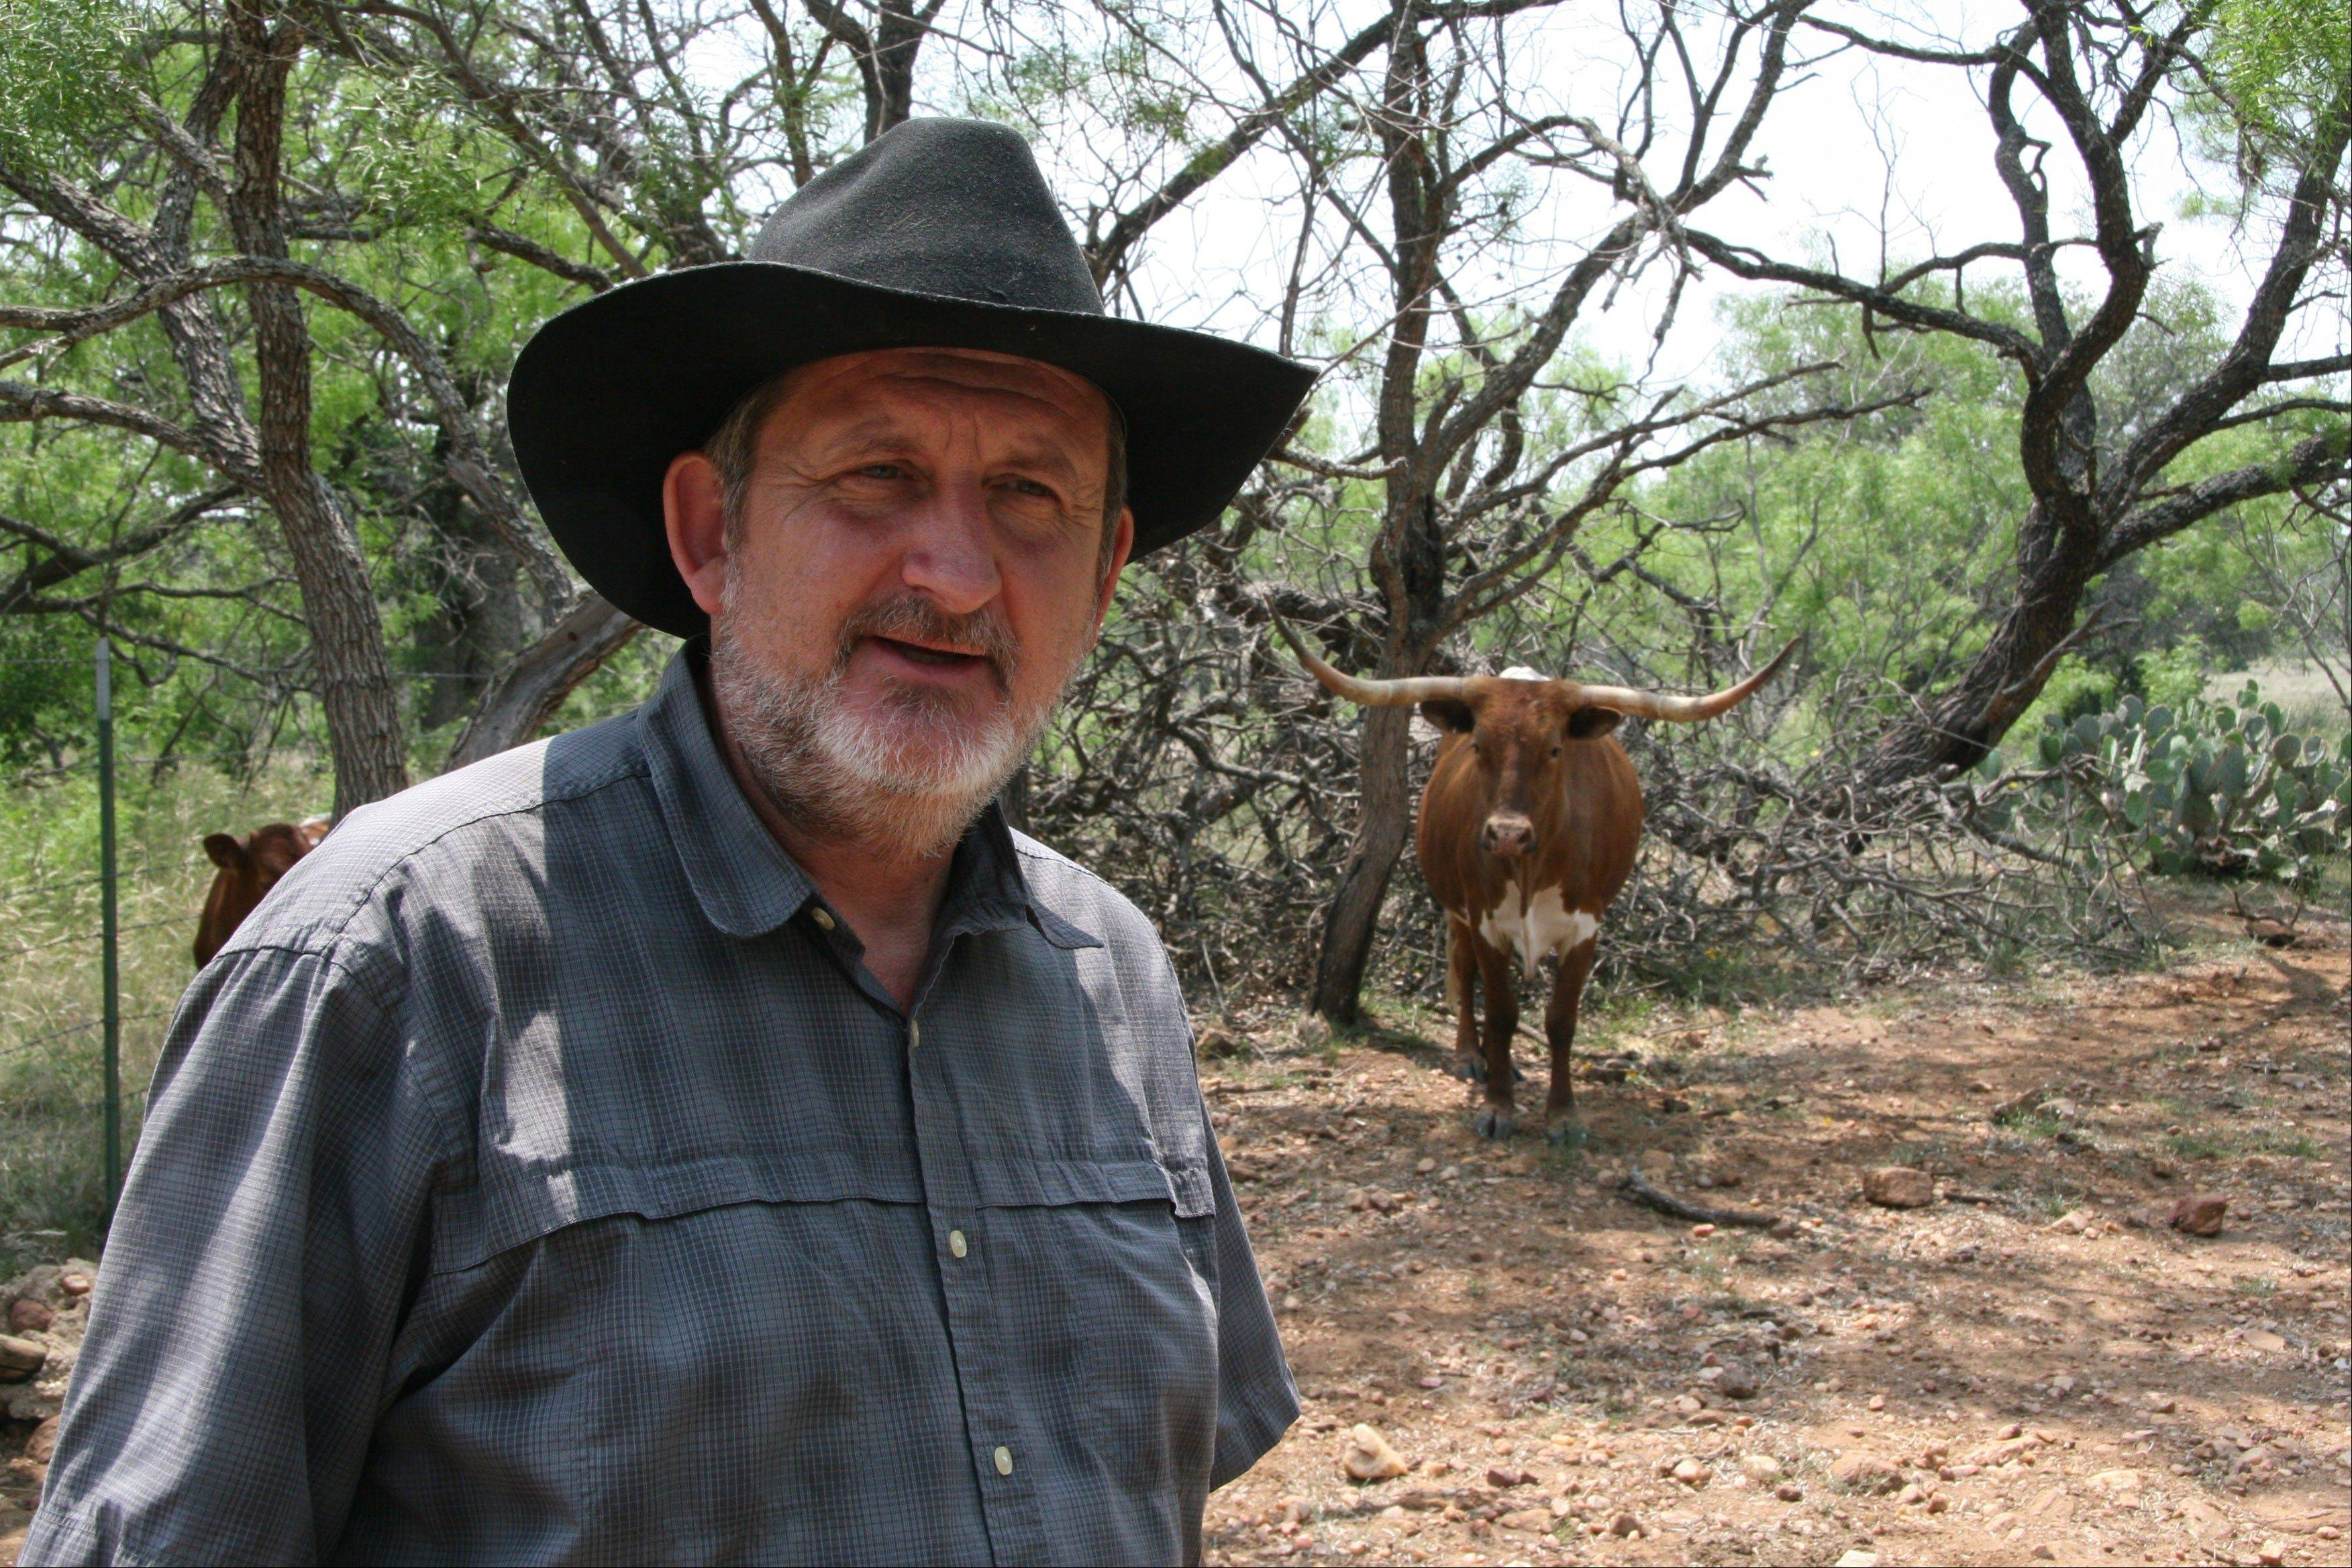 David Hillis, a University of Texas geneticist and biologist, stands at his Double Helix Ranch near Pontotoc, Texas. Research by Hillis and doctoral student Emily Jane McTavish, along with scientists from the University of Missouri-Columbia, also confirms Longhorns are direct descendants of cattle brought by Christopher Columbus in his second voyage to the New World in 1493.